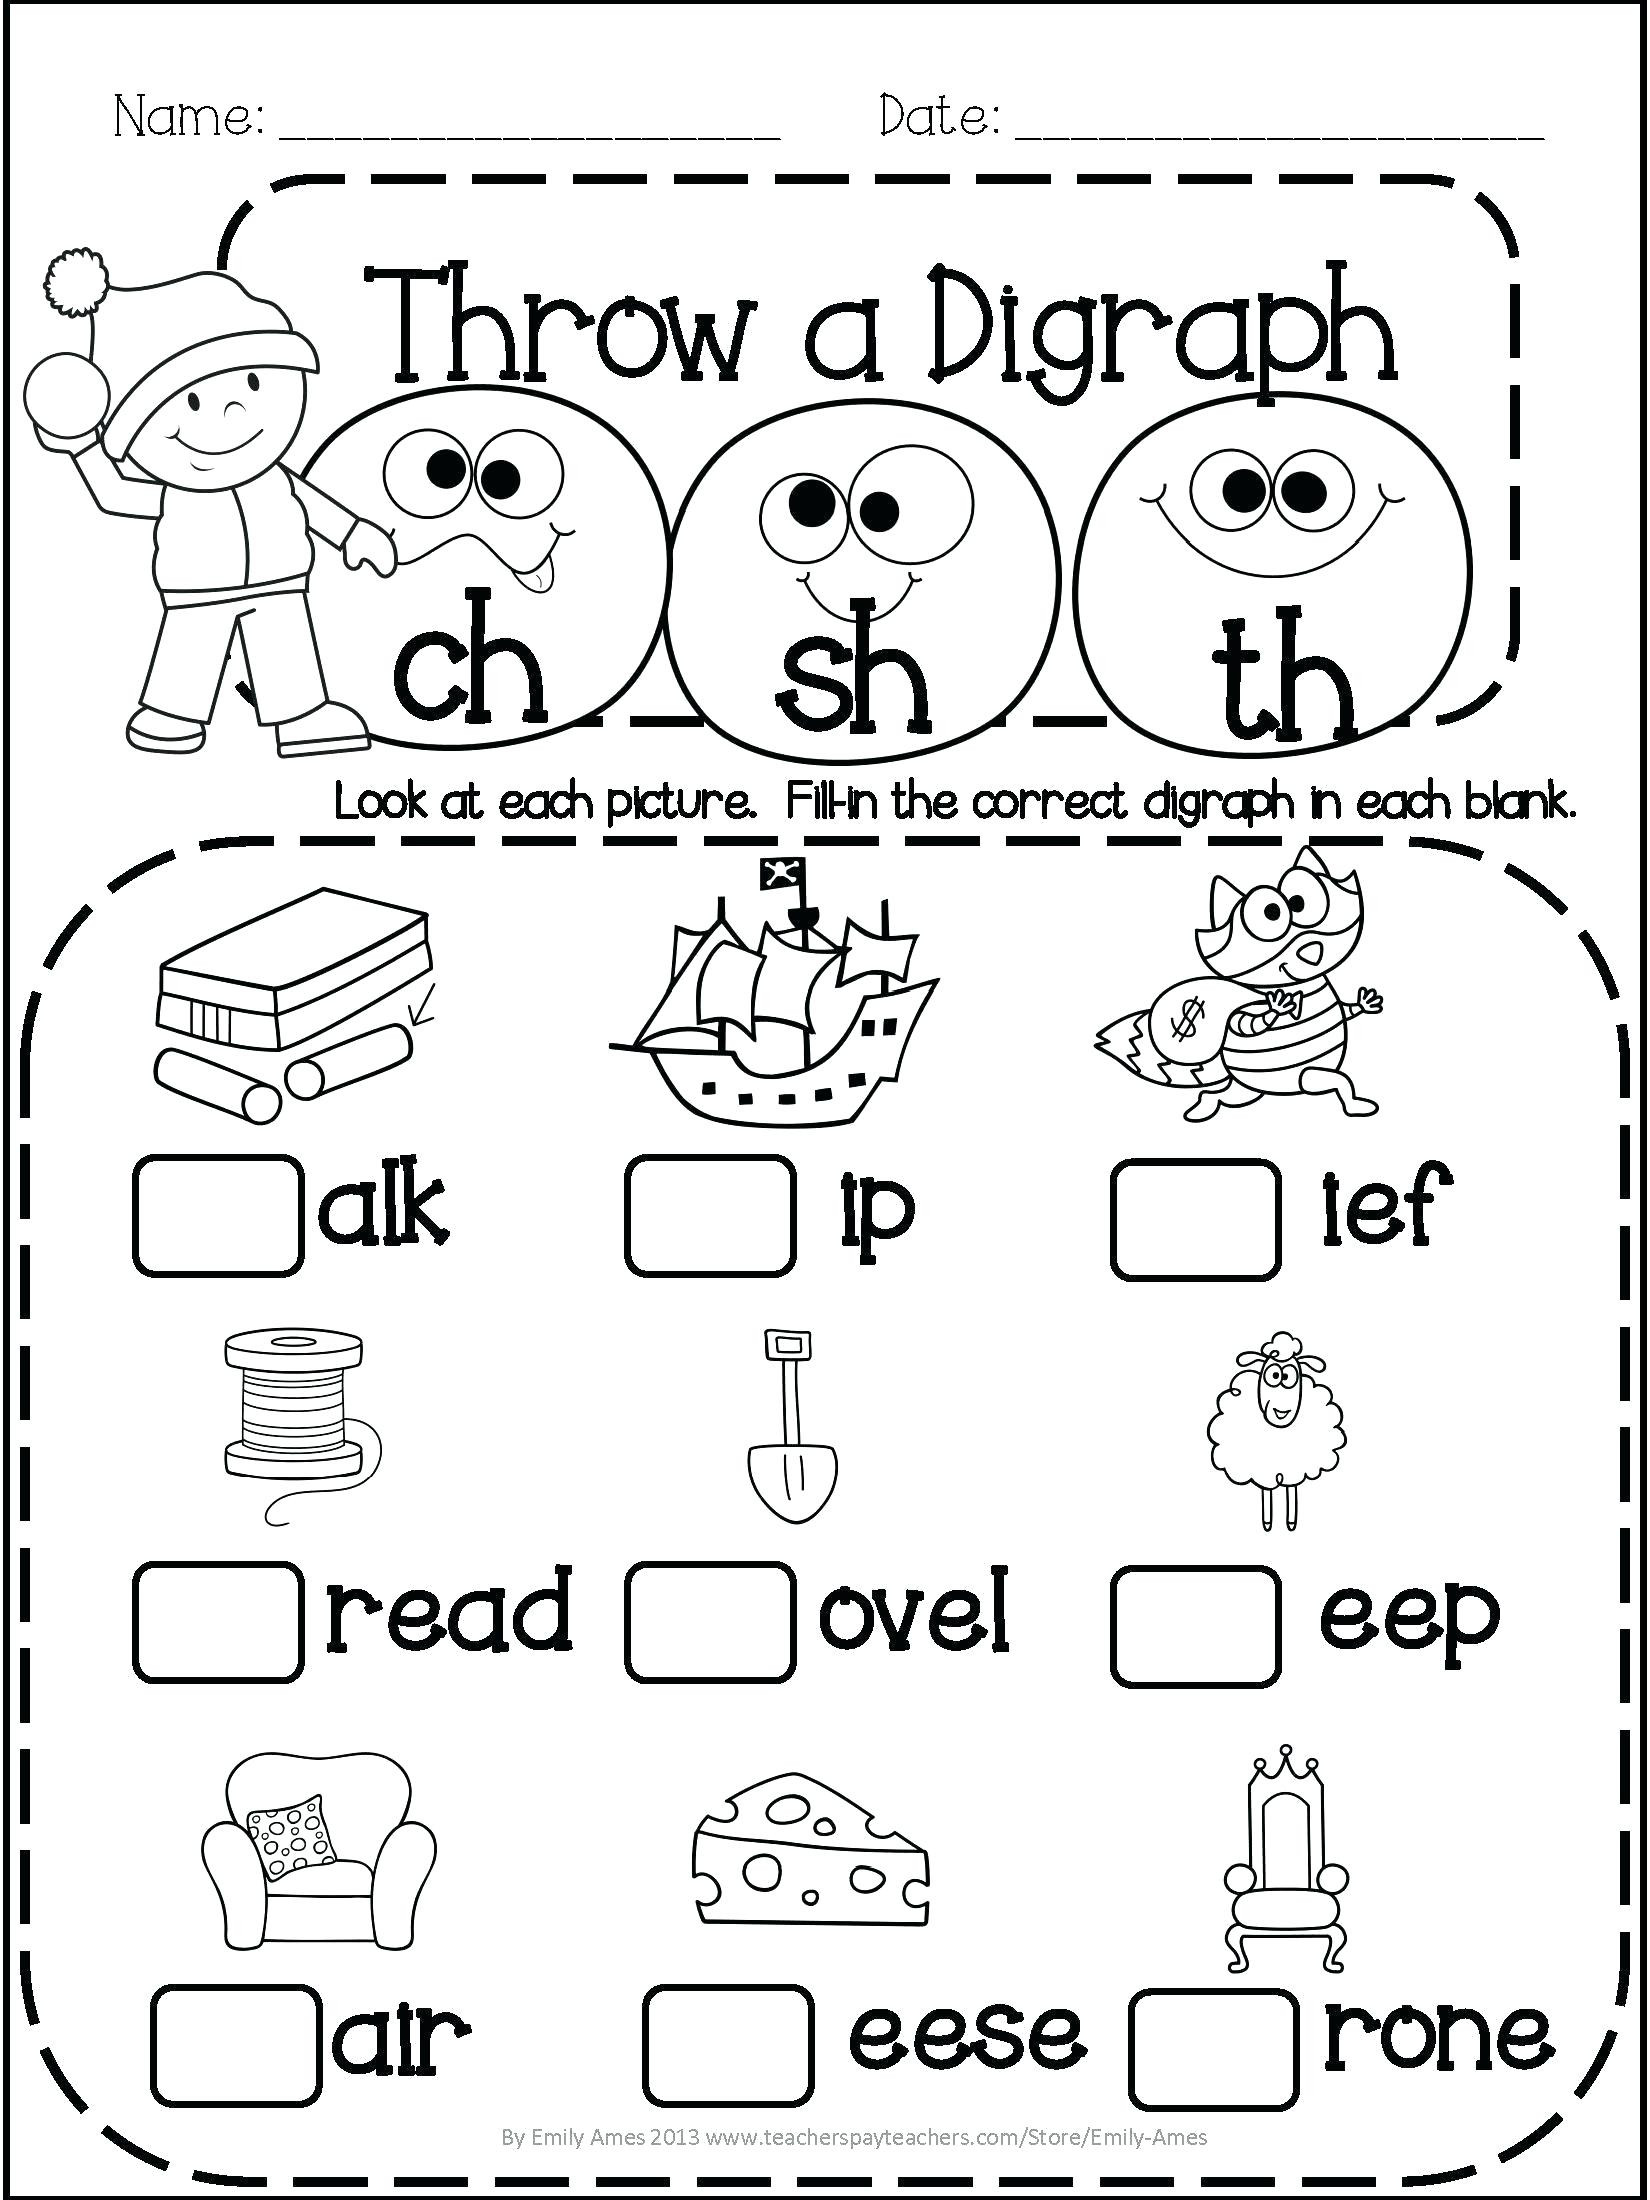 hight resolution of 4 Free Math Worksheets Third Grade 3 Addition Word Problems -  apocalomegaproductions.com